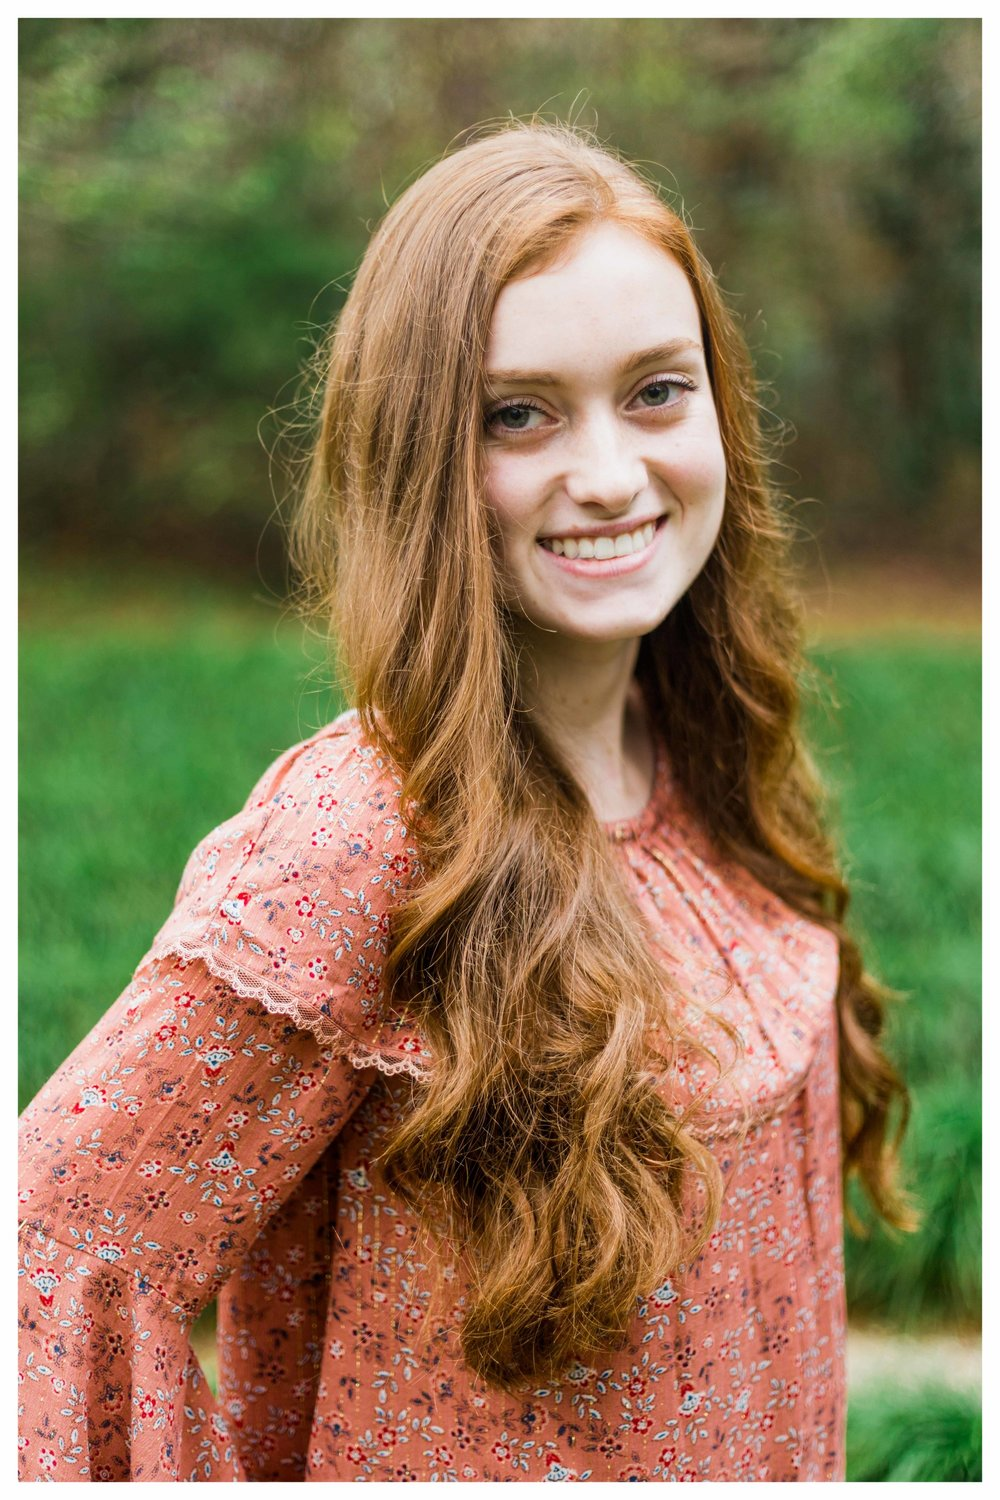 lillie_senior_2018_blog-3.jpg